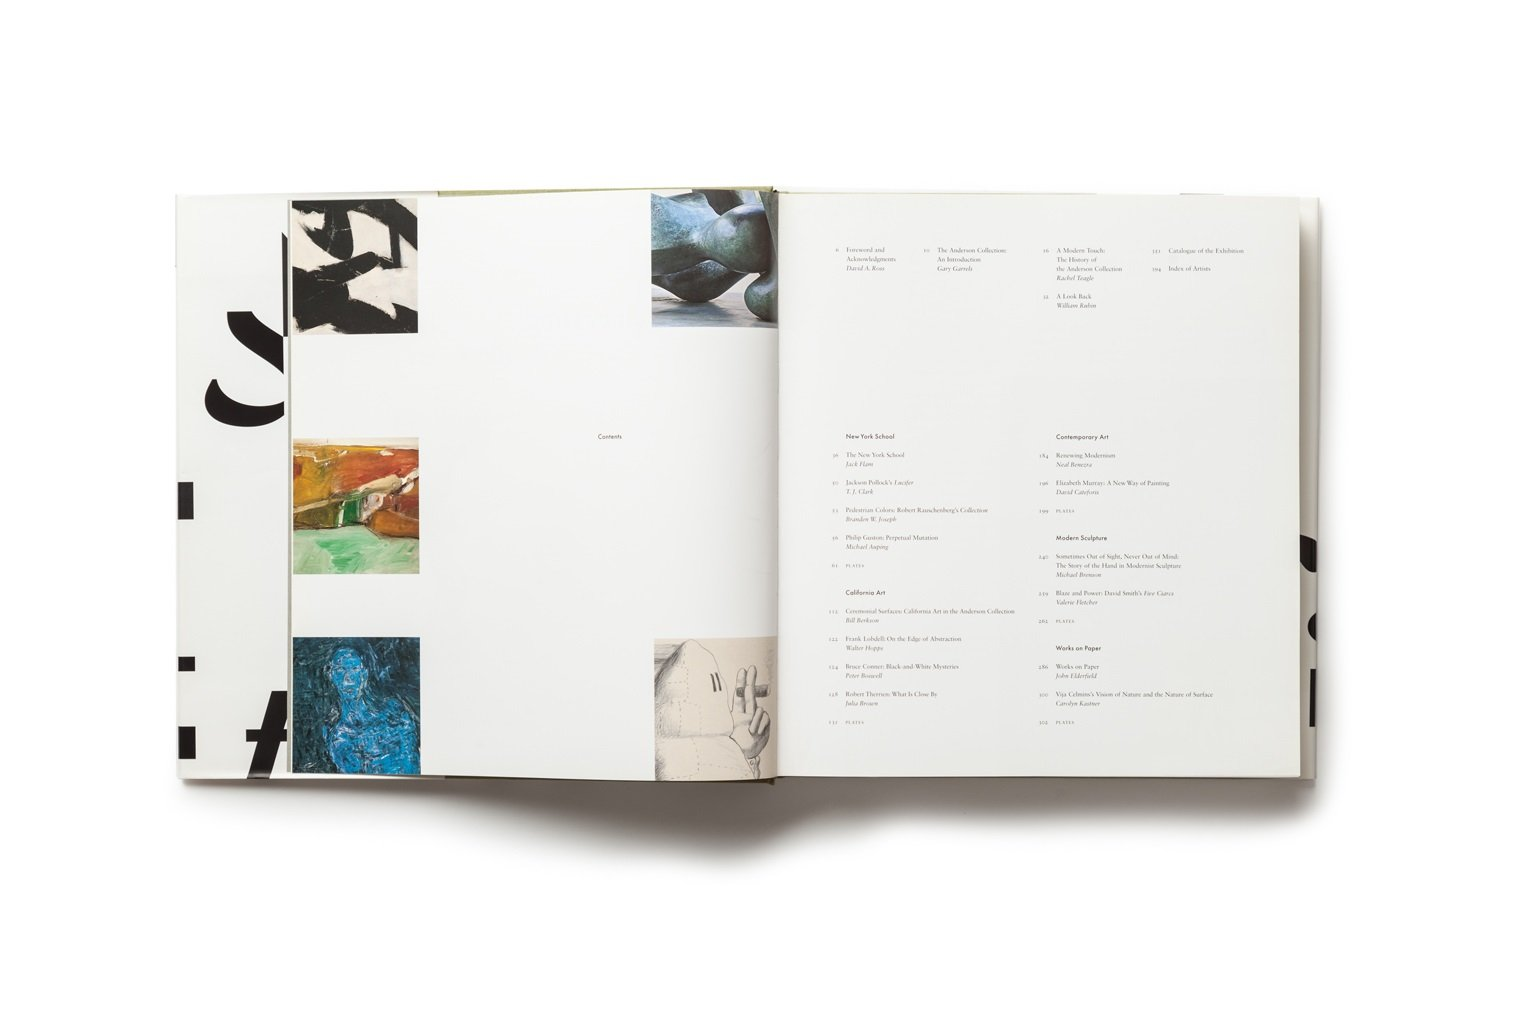 Celebrating Modern Art: The Anderson Collection publication table of contents